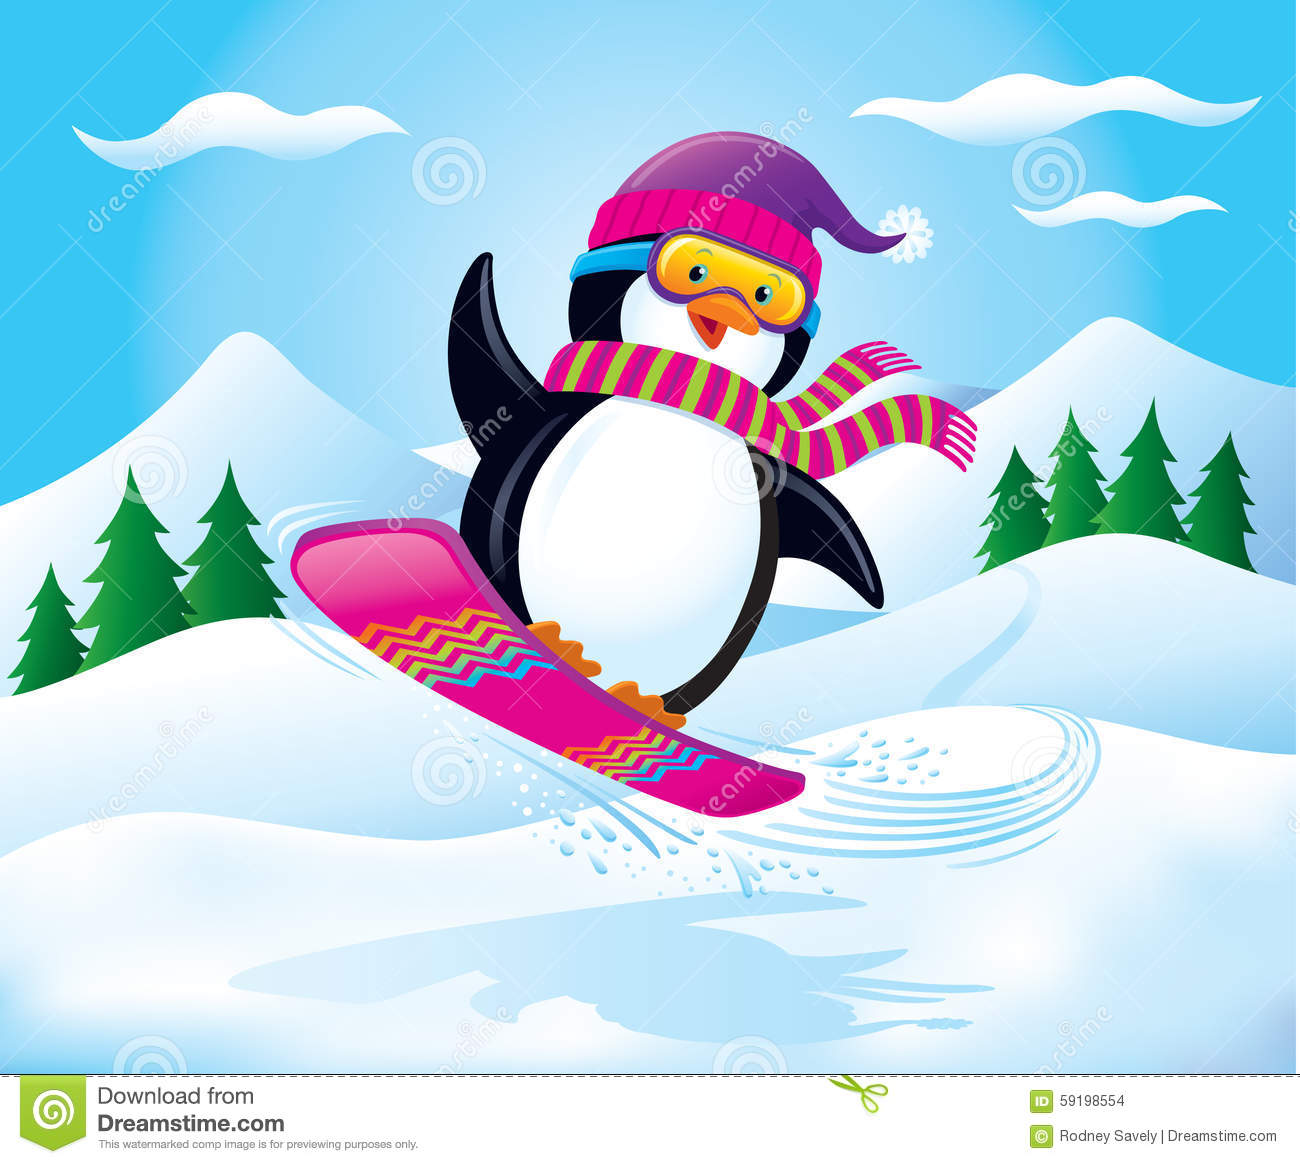 Snowboarding Penguin Air Cartoon Illustration Cute Wearing Knit Cap Scarf Snow Goggles Catching Some Vector